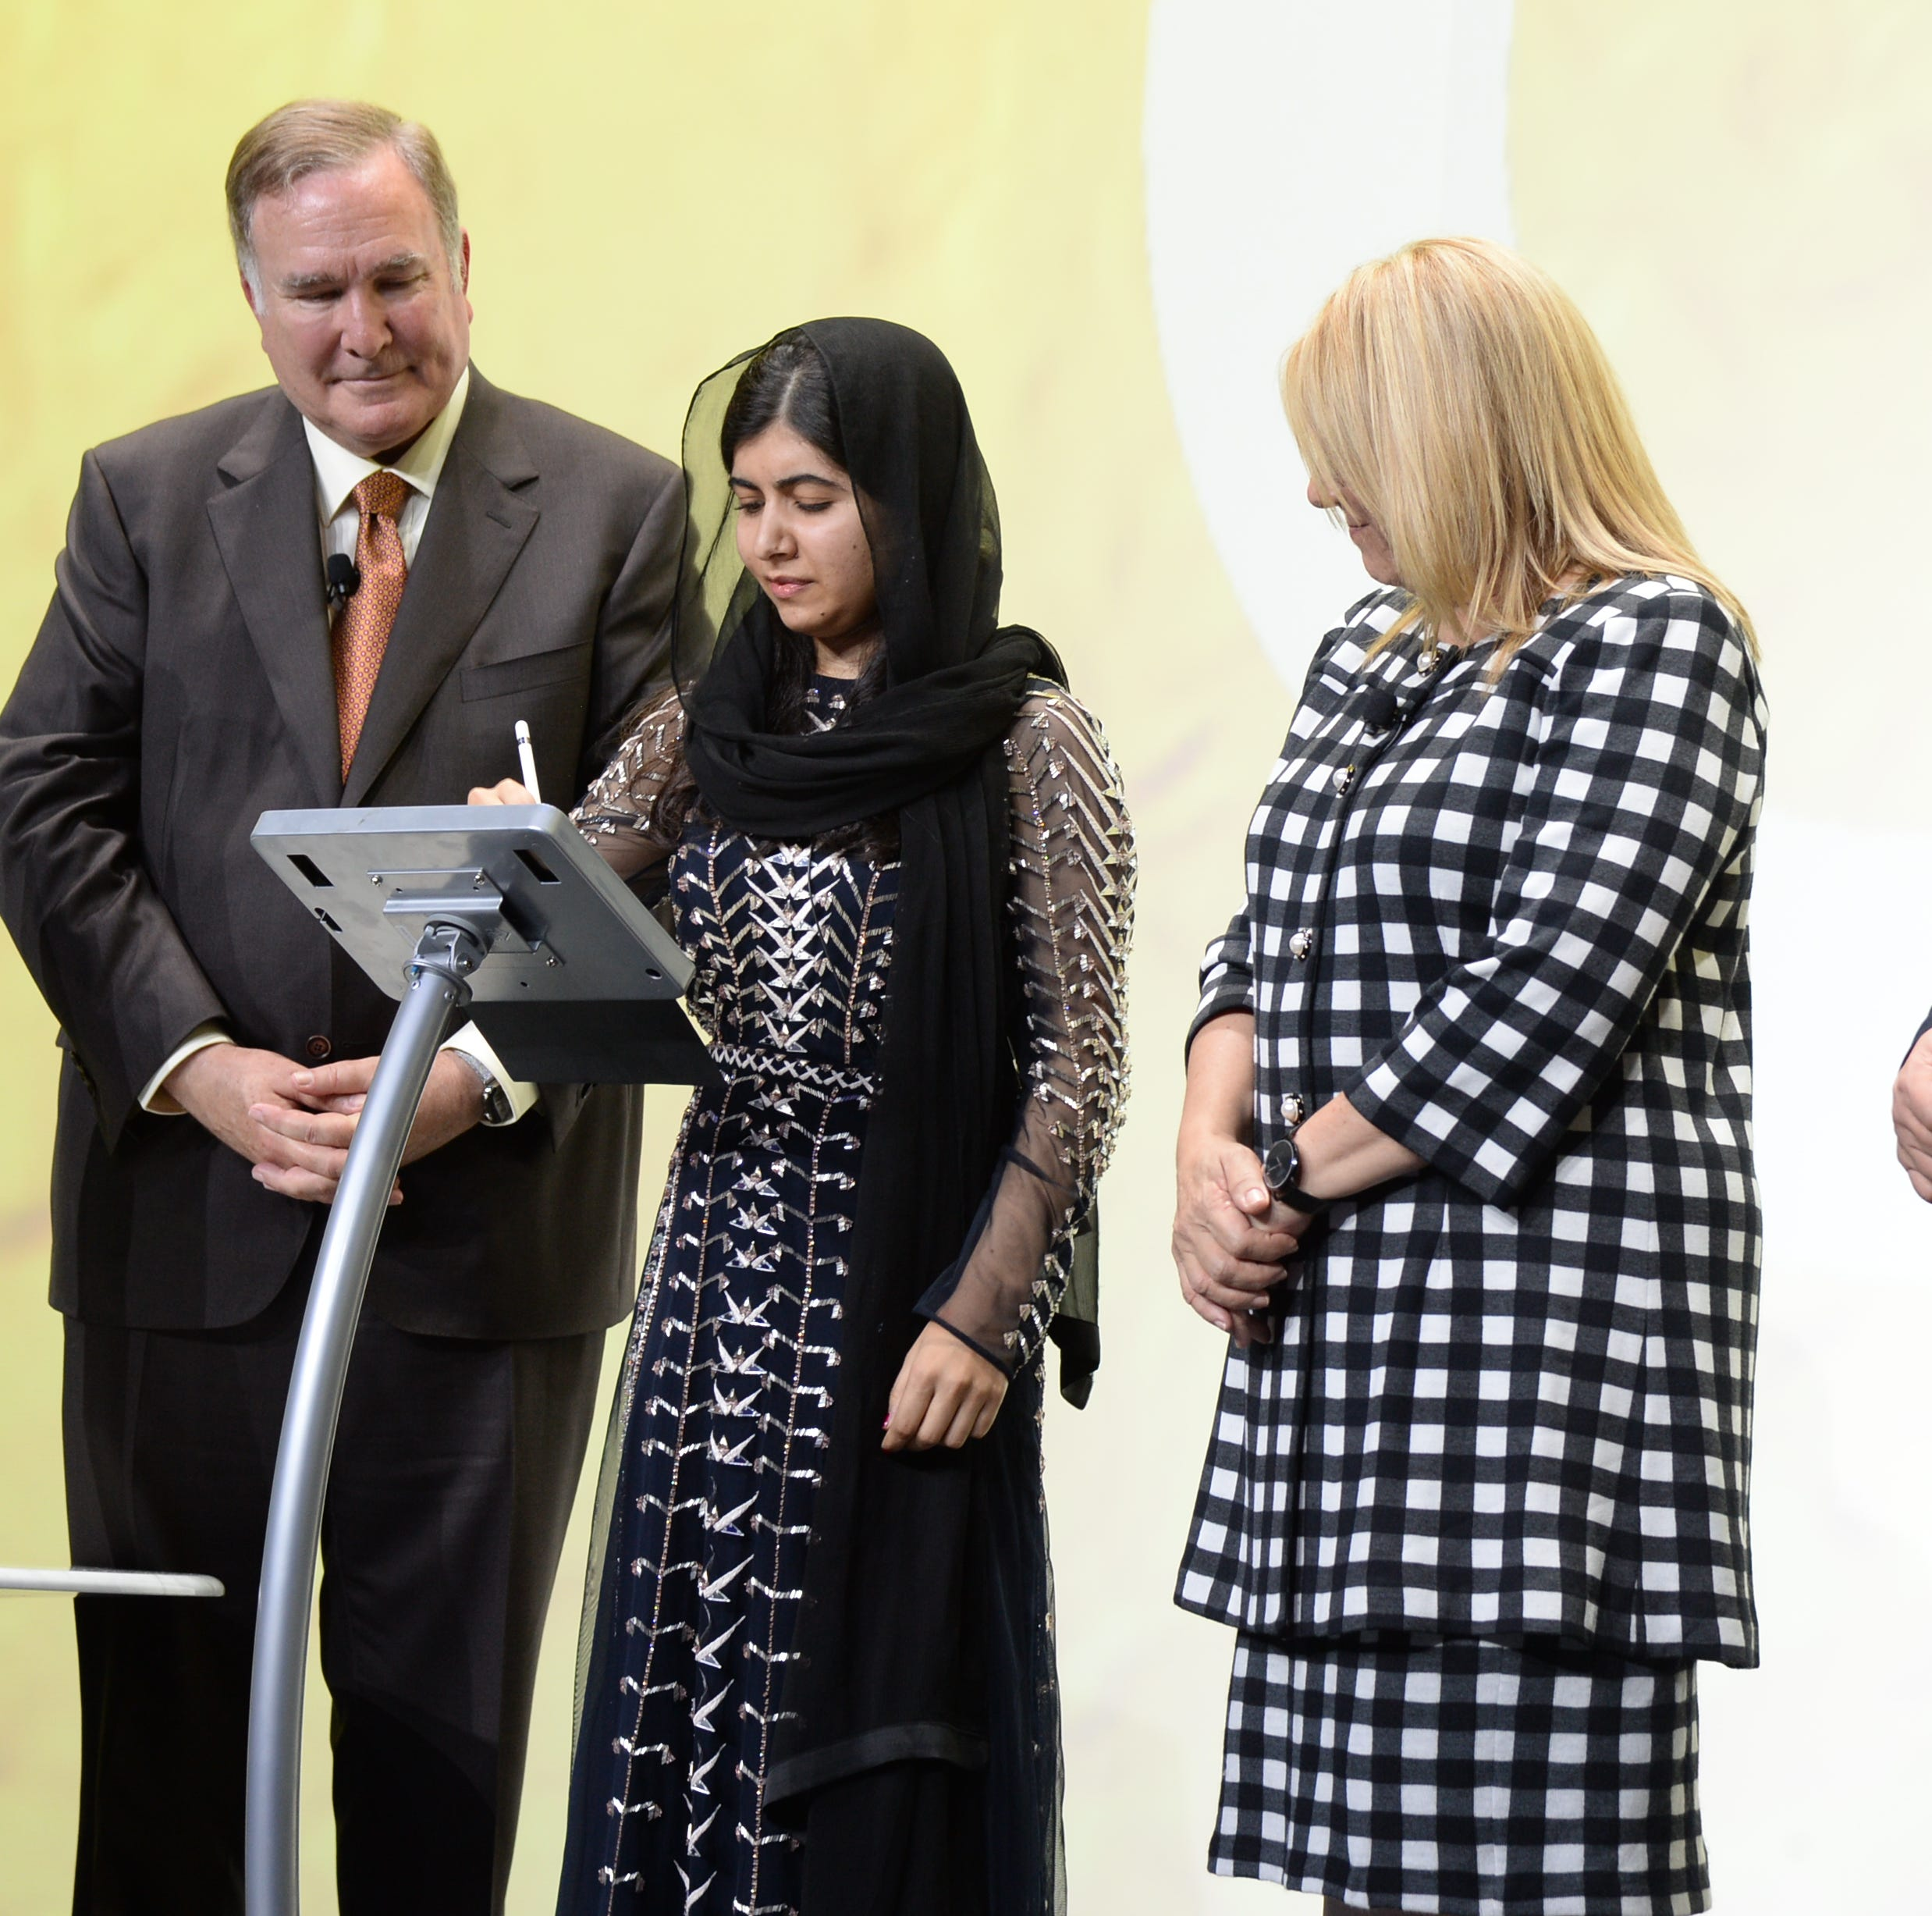 Royal Caribbean Cruises chairman and CEO Richard Fain (left), Celebrity Edge godmother Malala Yousafzai, Celebrity Cruises CEO Lisa Lutoff-Perlo and Celebrity Edge captain Costas Nestoroudis on stage during the naming ceremony for Celebrity Edge on Dec. 4, 2018.